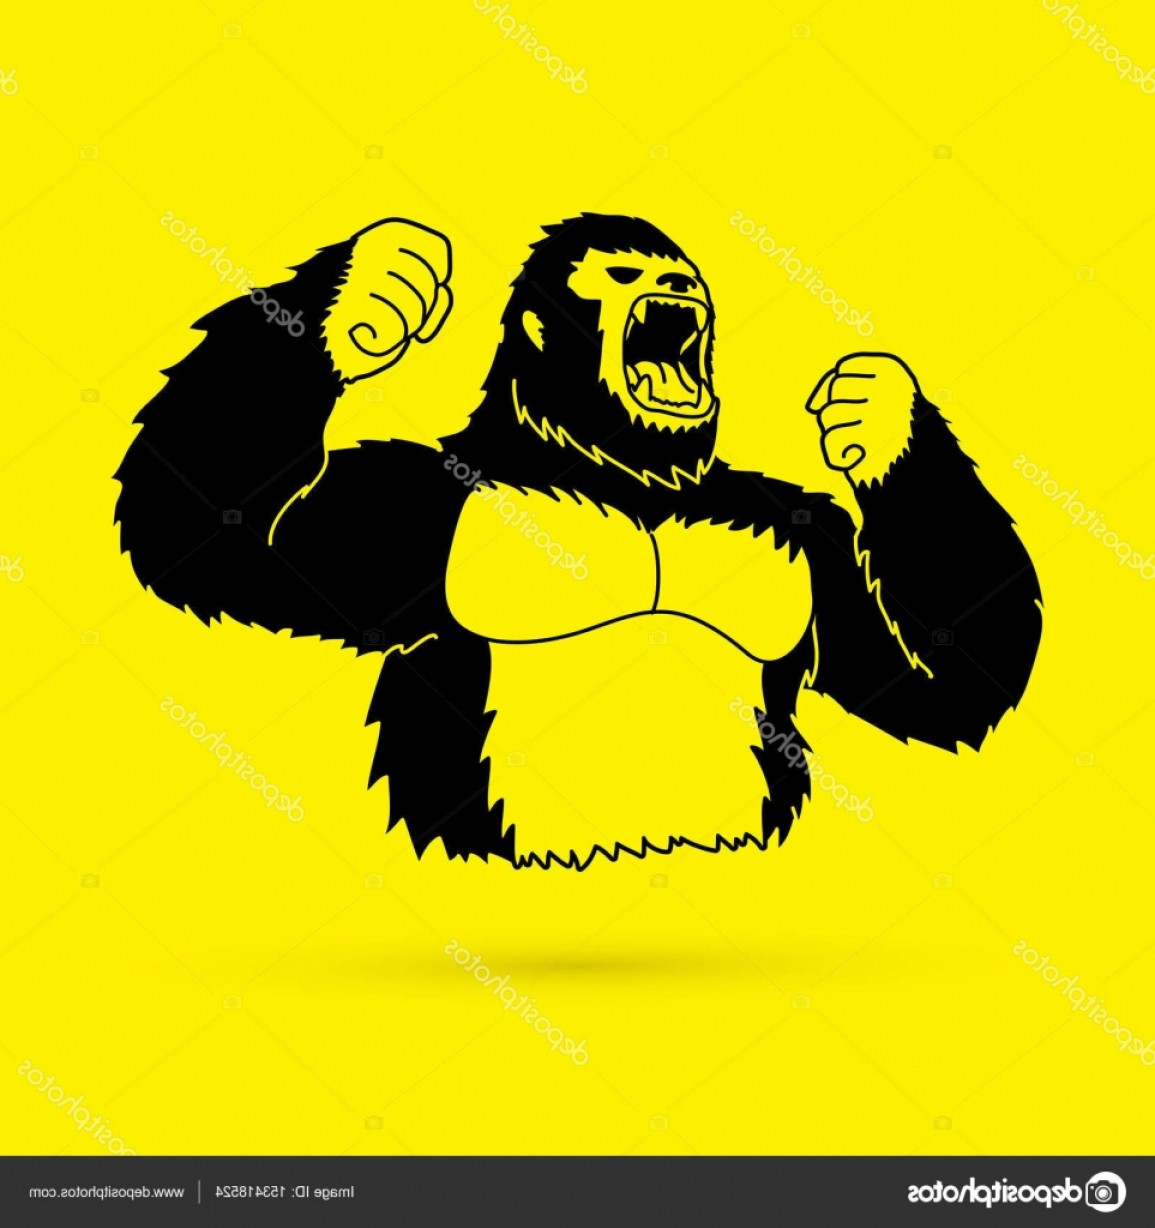 Drawings Of King Kong Vector: Stock Illustration Angry King Kong Big Gorilla